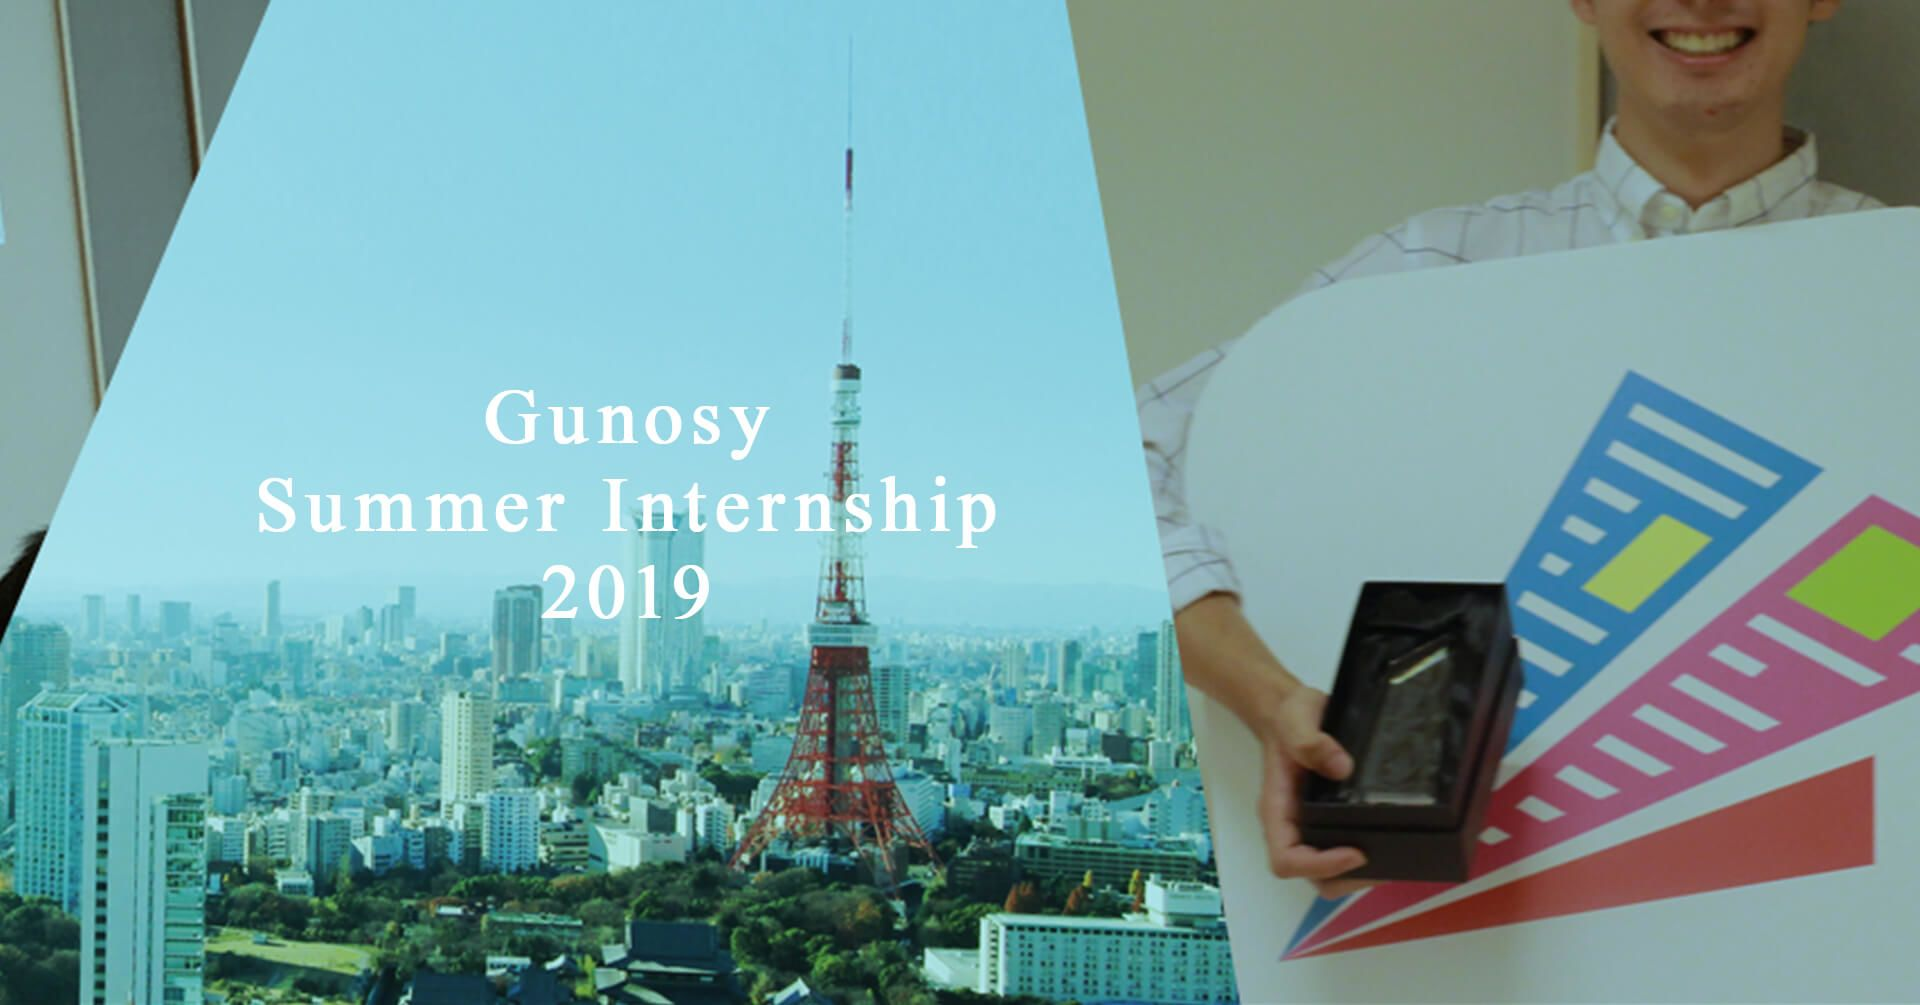 Gunosy Summer Internship 2019 開催!